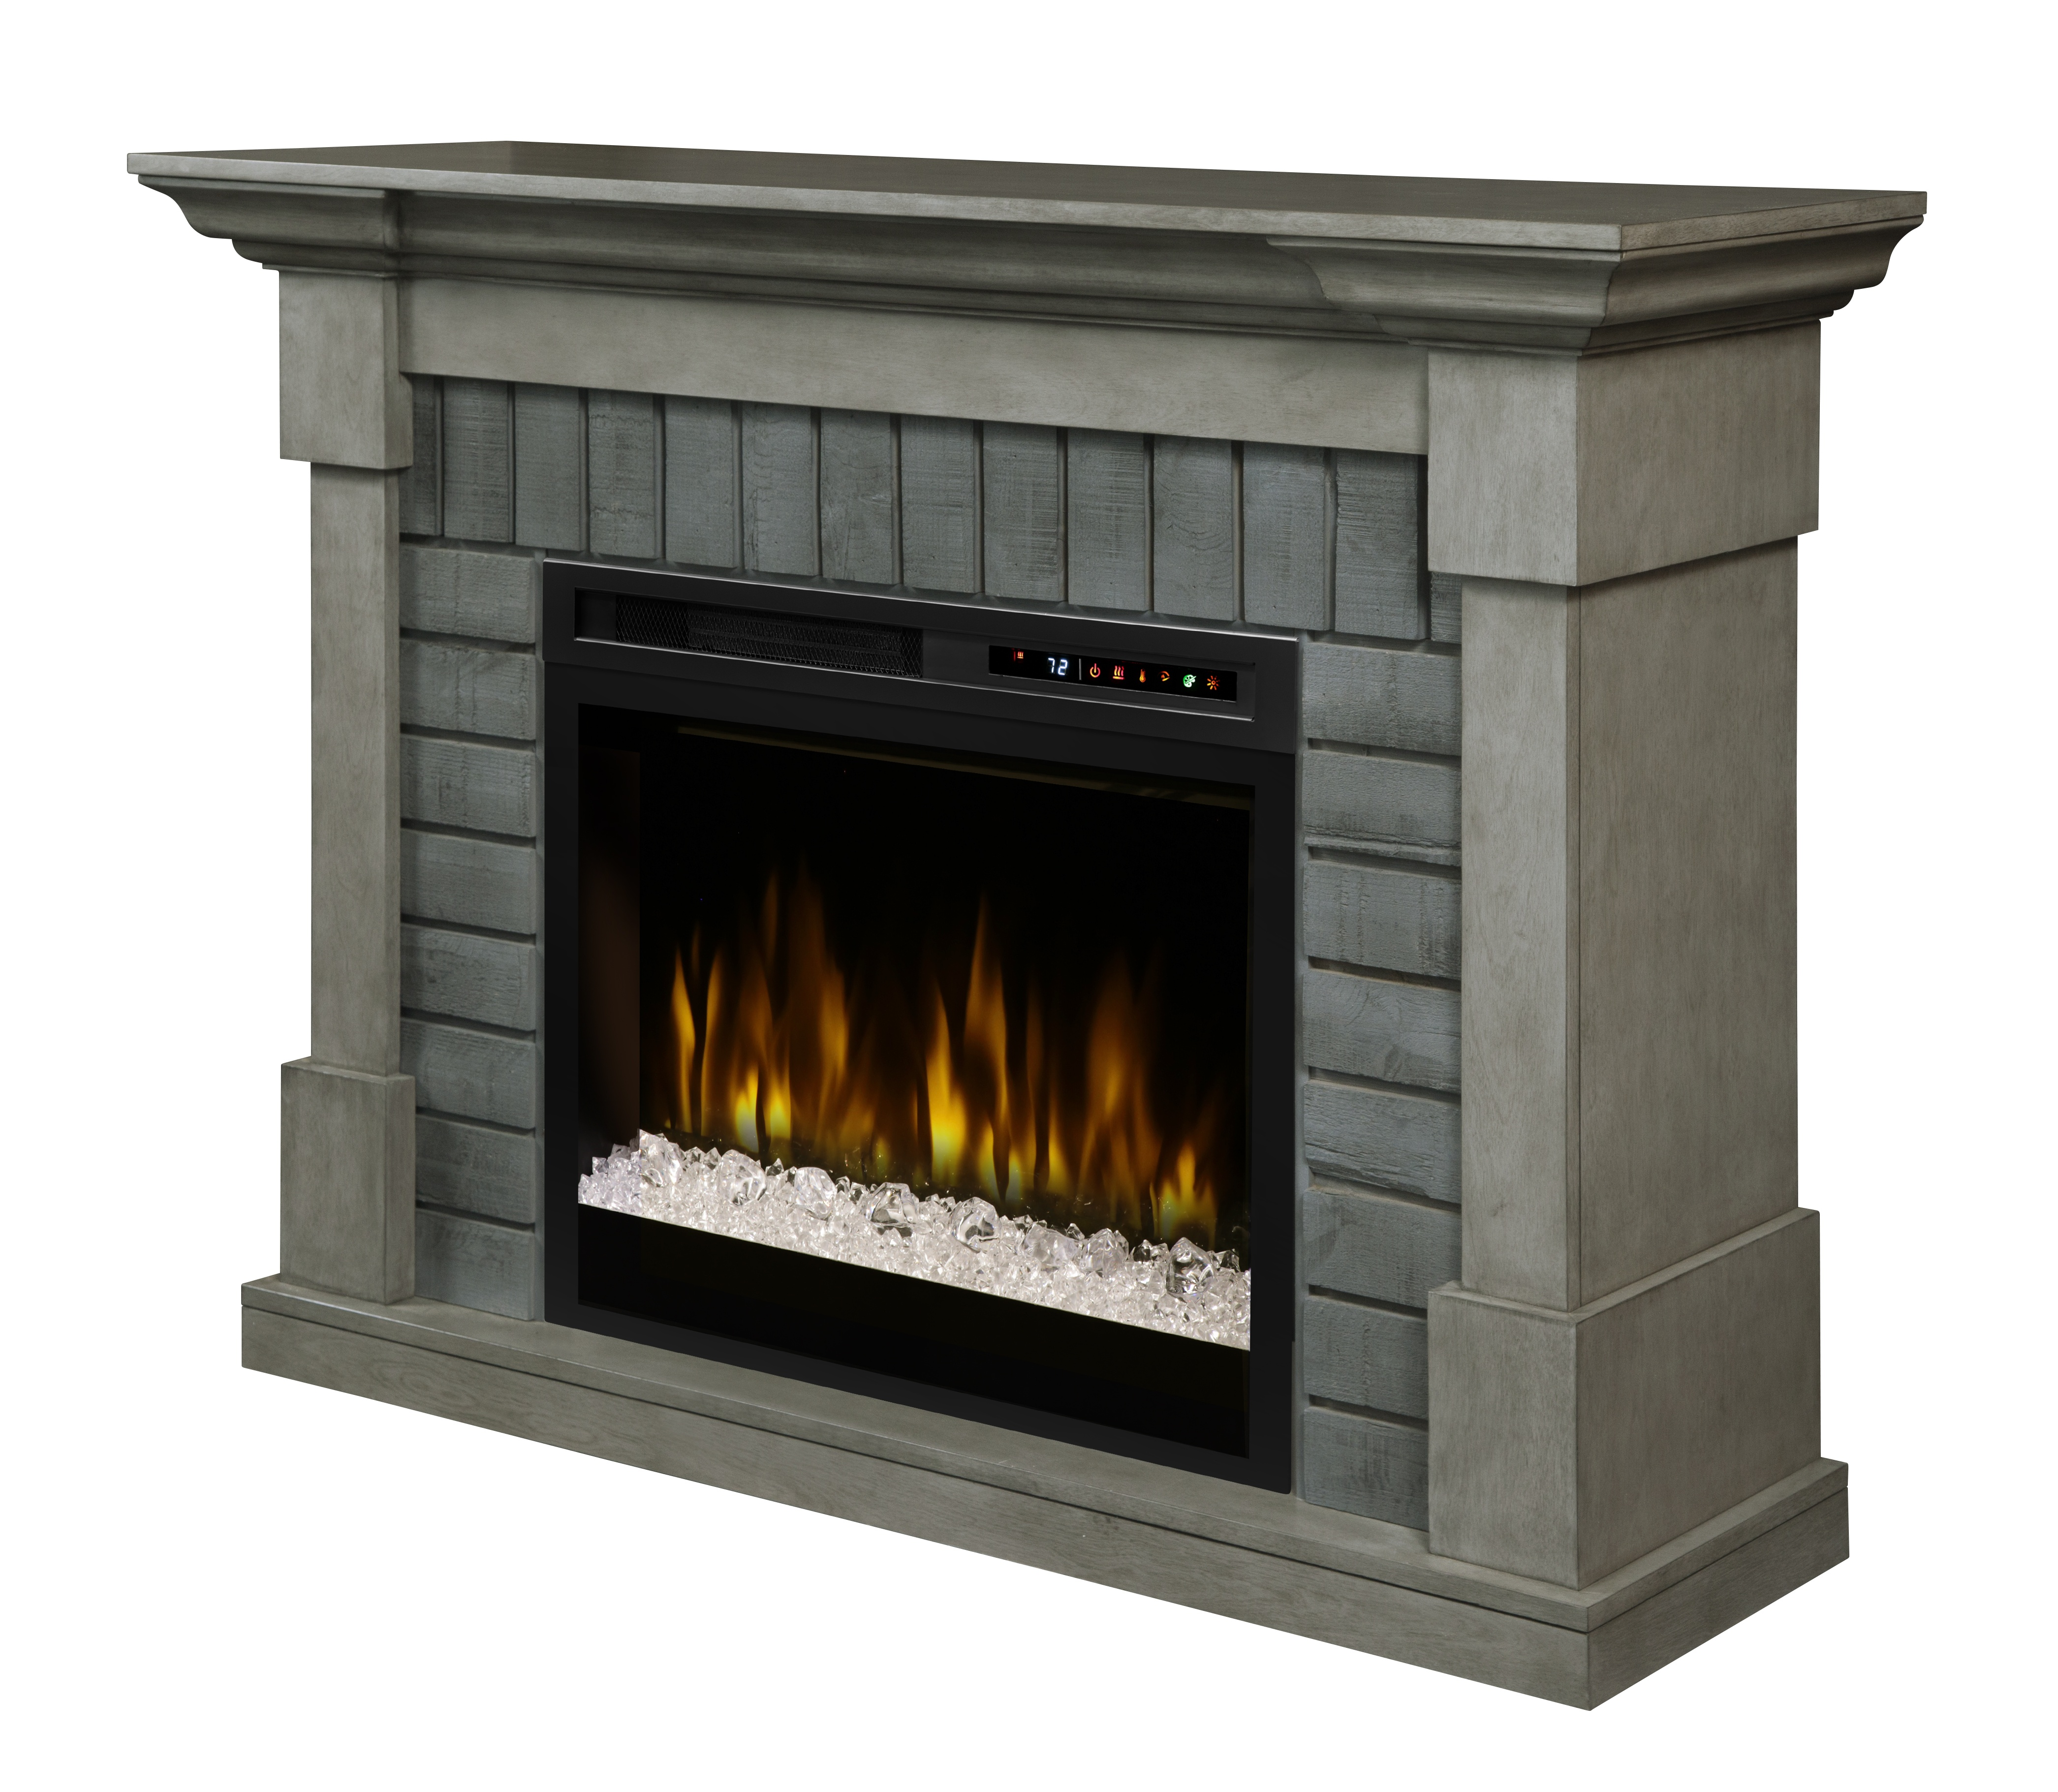 Dimplex Royce Gds28g8 1924sk Electric Fireplace With Glass Embers